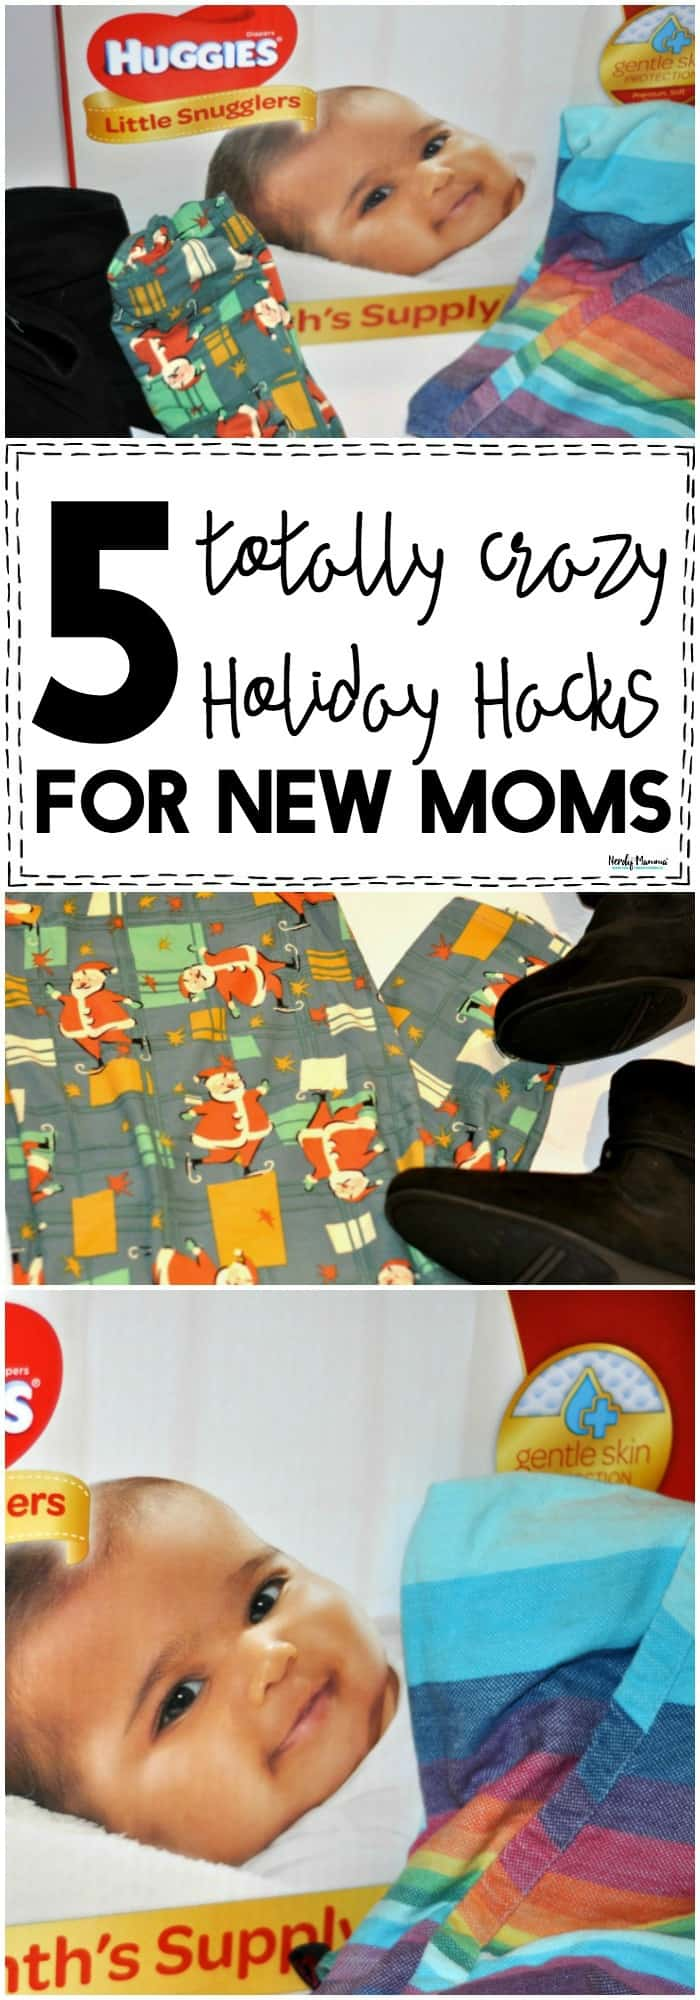 OMG, you've GOT to check out these 5 totally crazy holiday hacks for new moms. They're a LIFESAVER if you have a little baby during the holidays!! #Christmas #holidays #babies #newborn #pregnancy